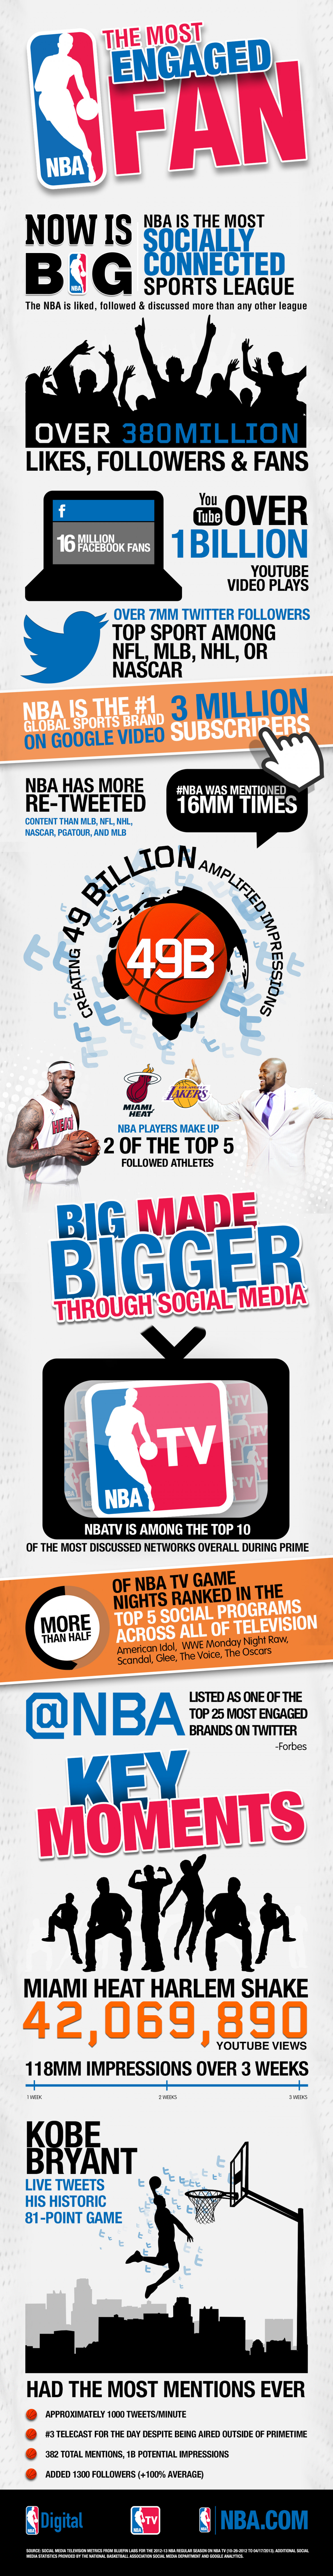 NBA - The Most Engaged Fan Infographic